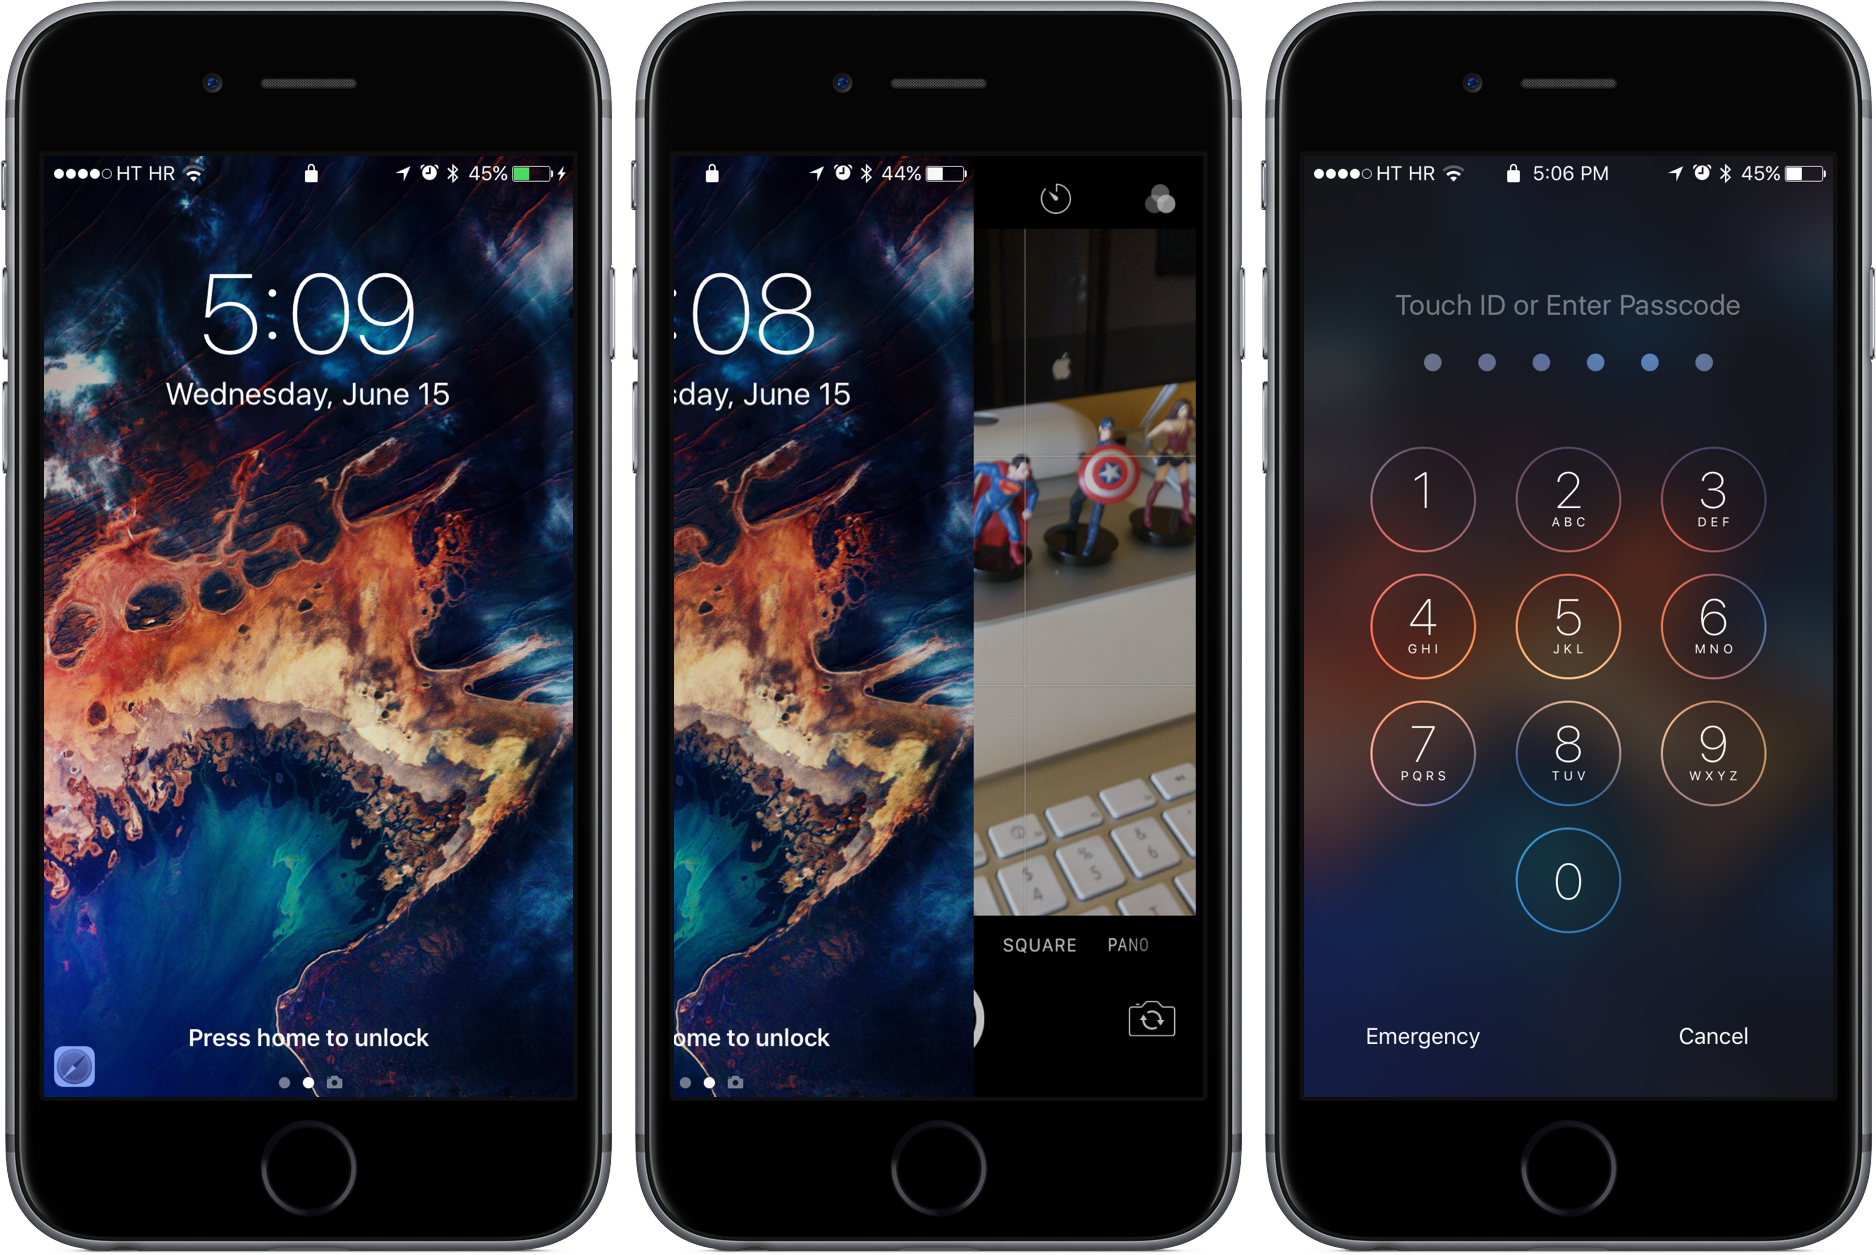 iOS 10 Lock screen Press home to unlock image 002